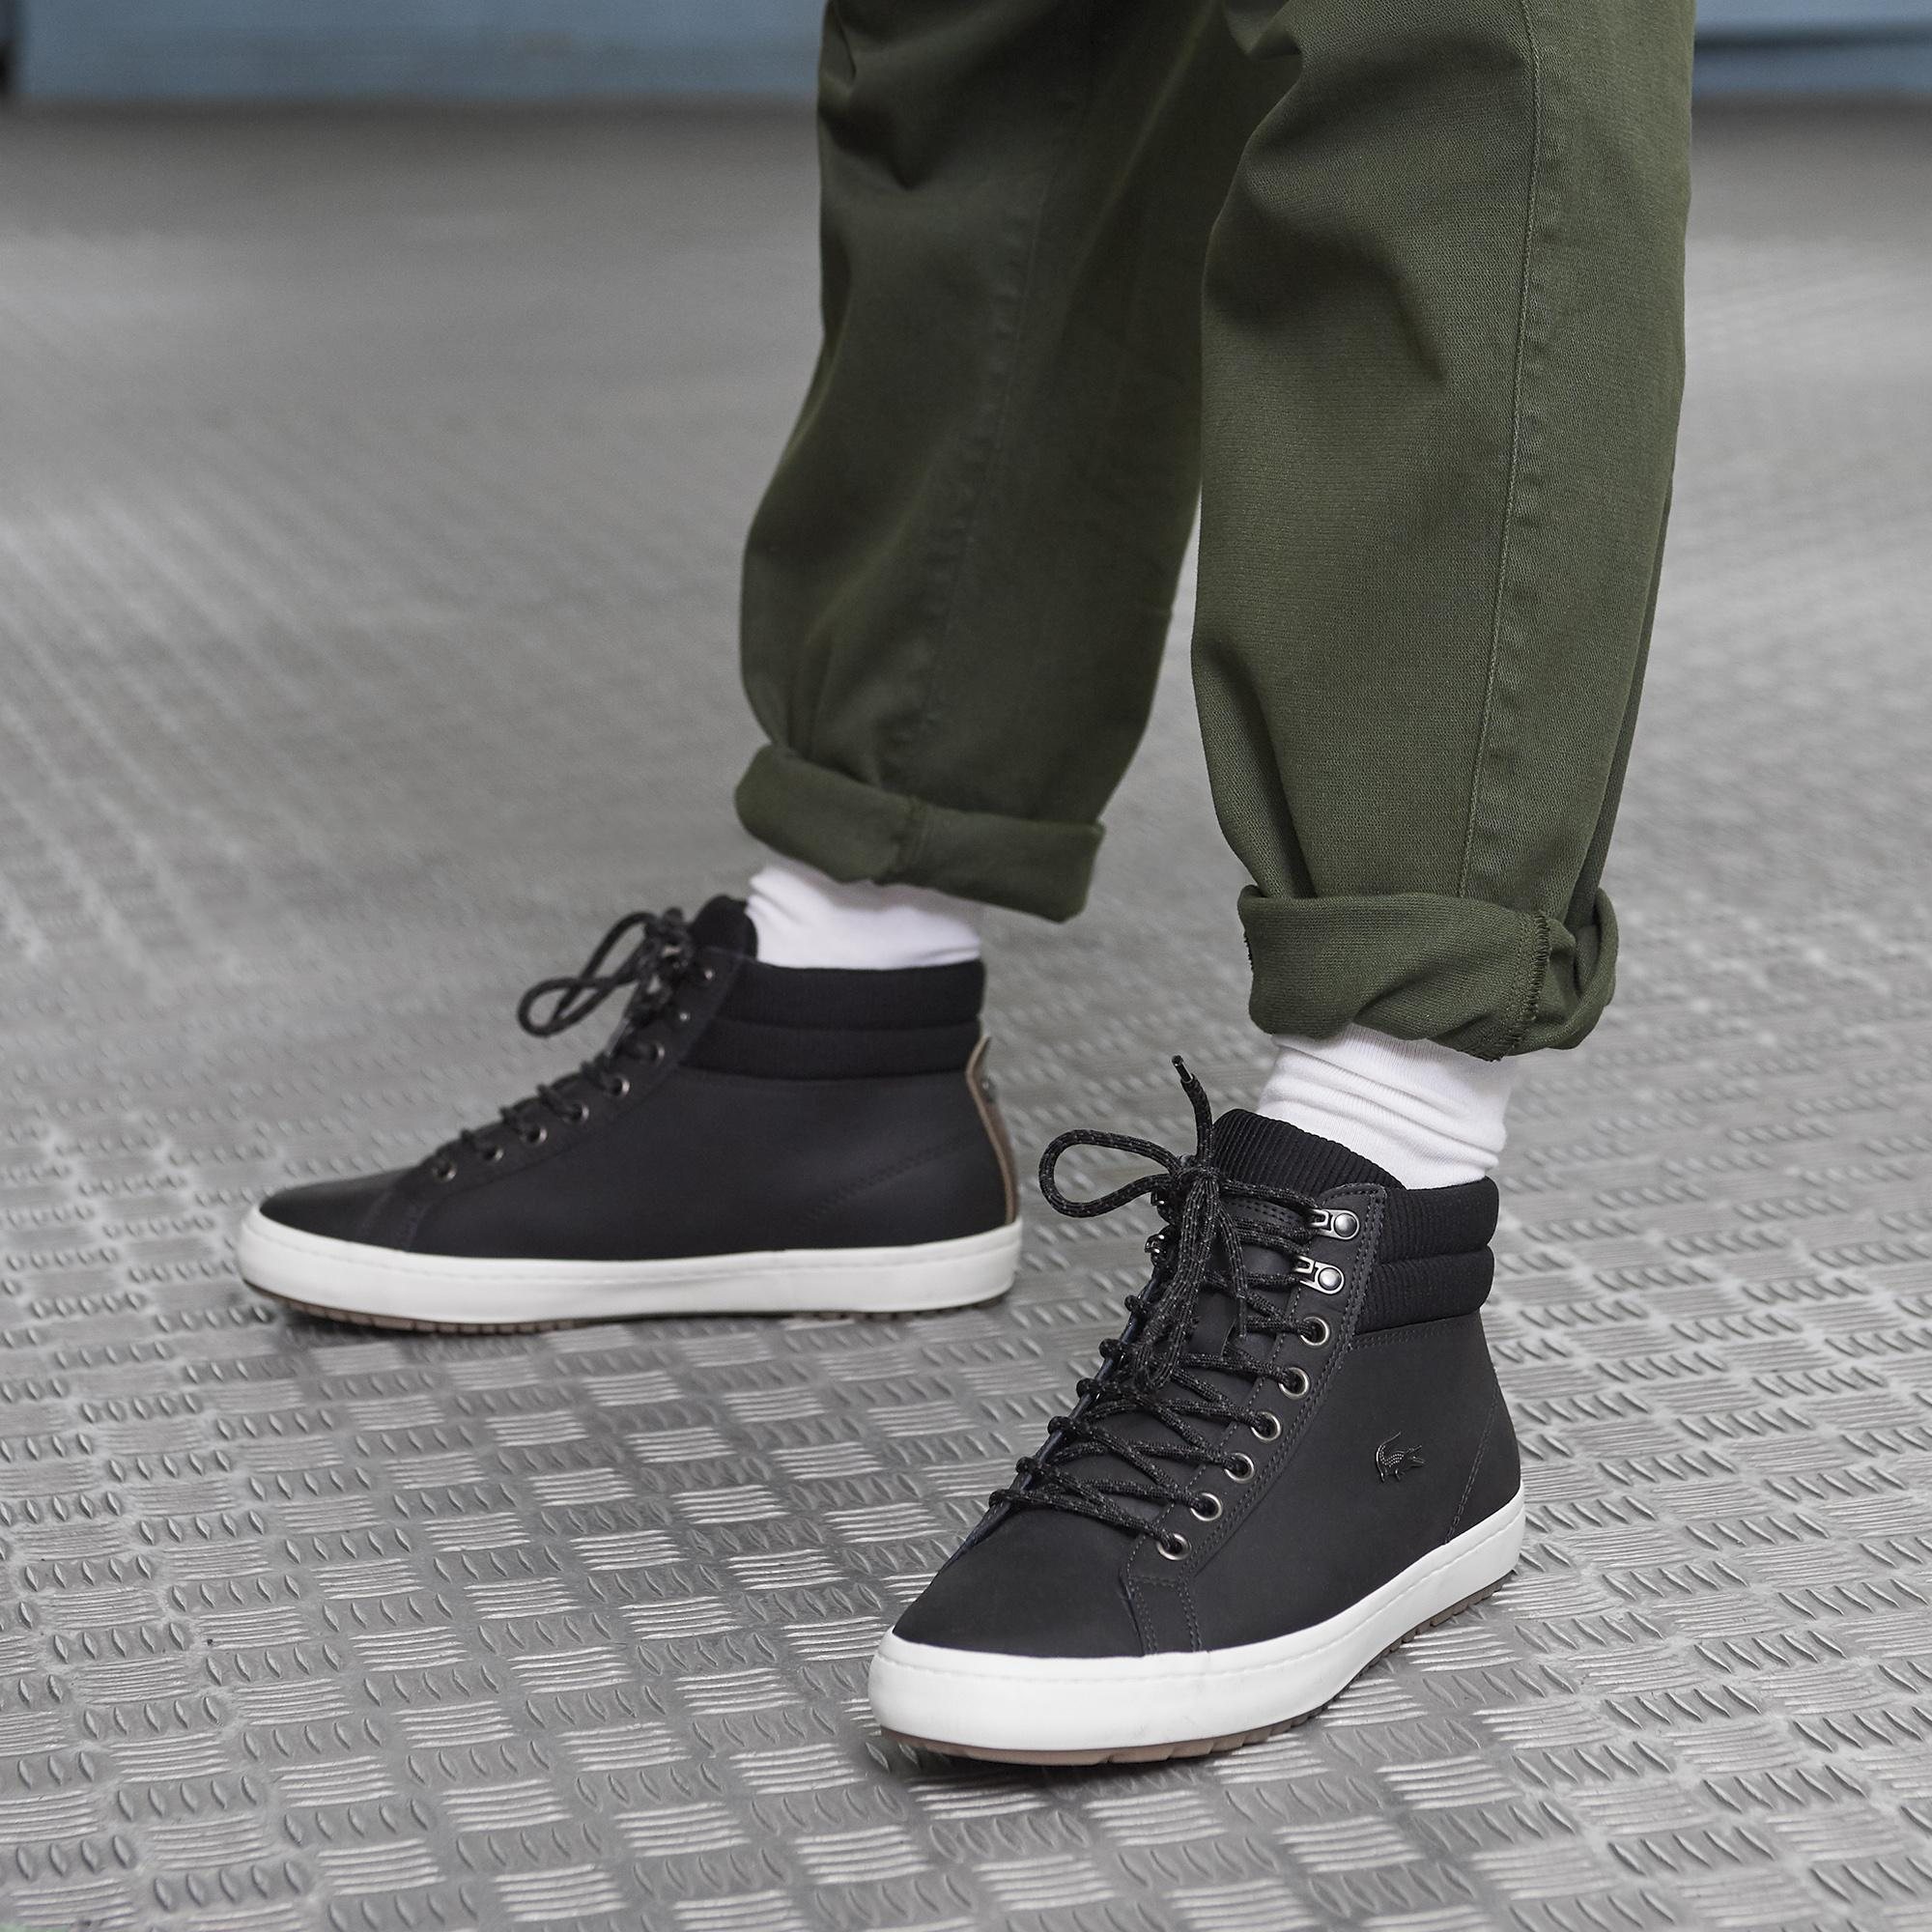 Lacoste Straightset Insulac 318 1 Męskie Boots